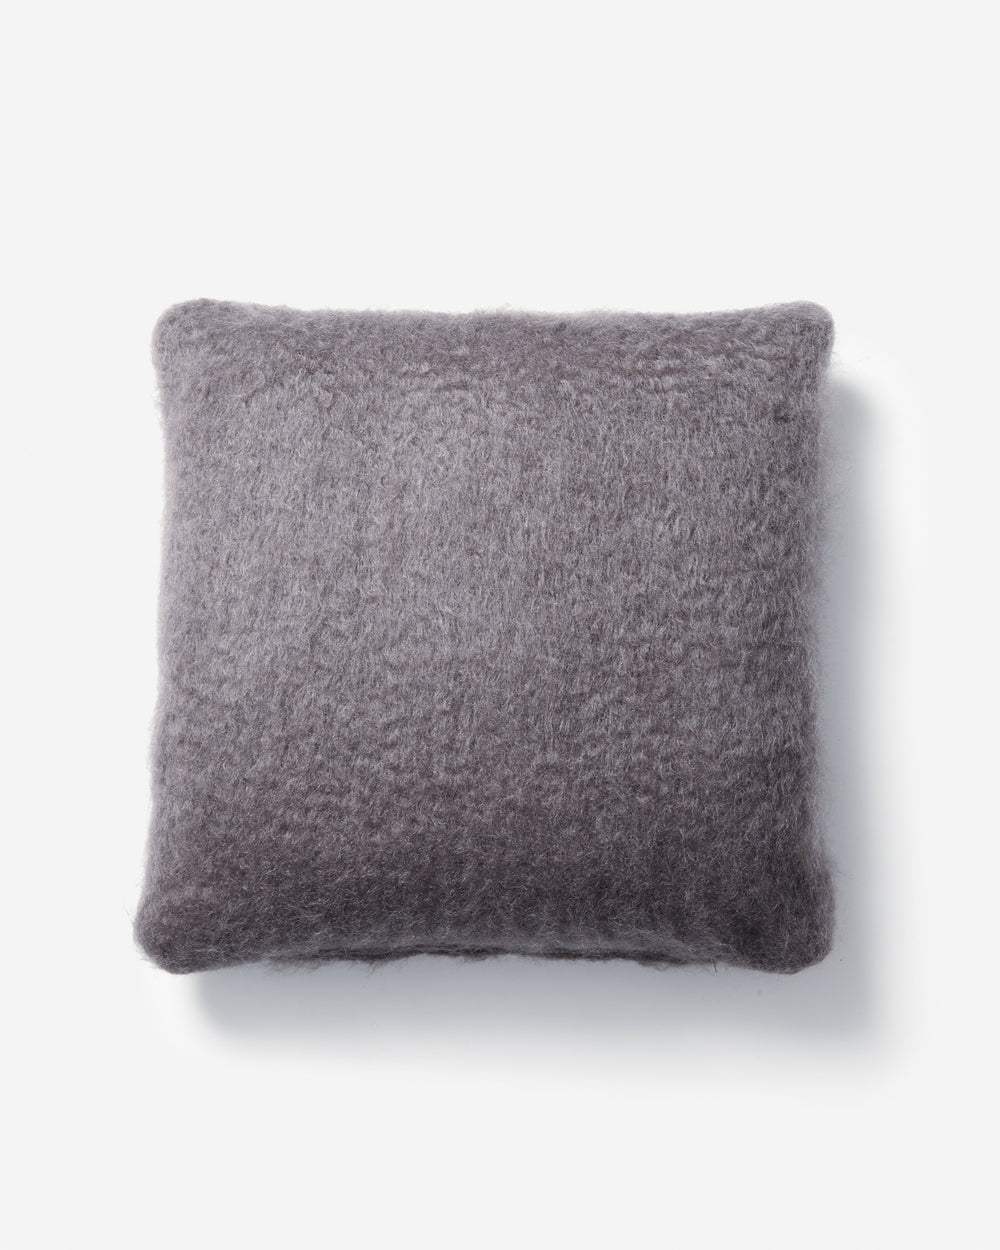 Exquisite Mohair & Wool Pillow